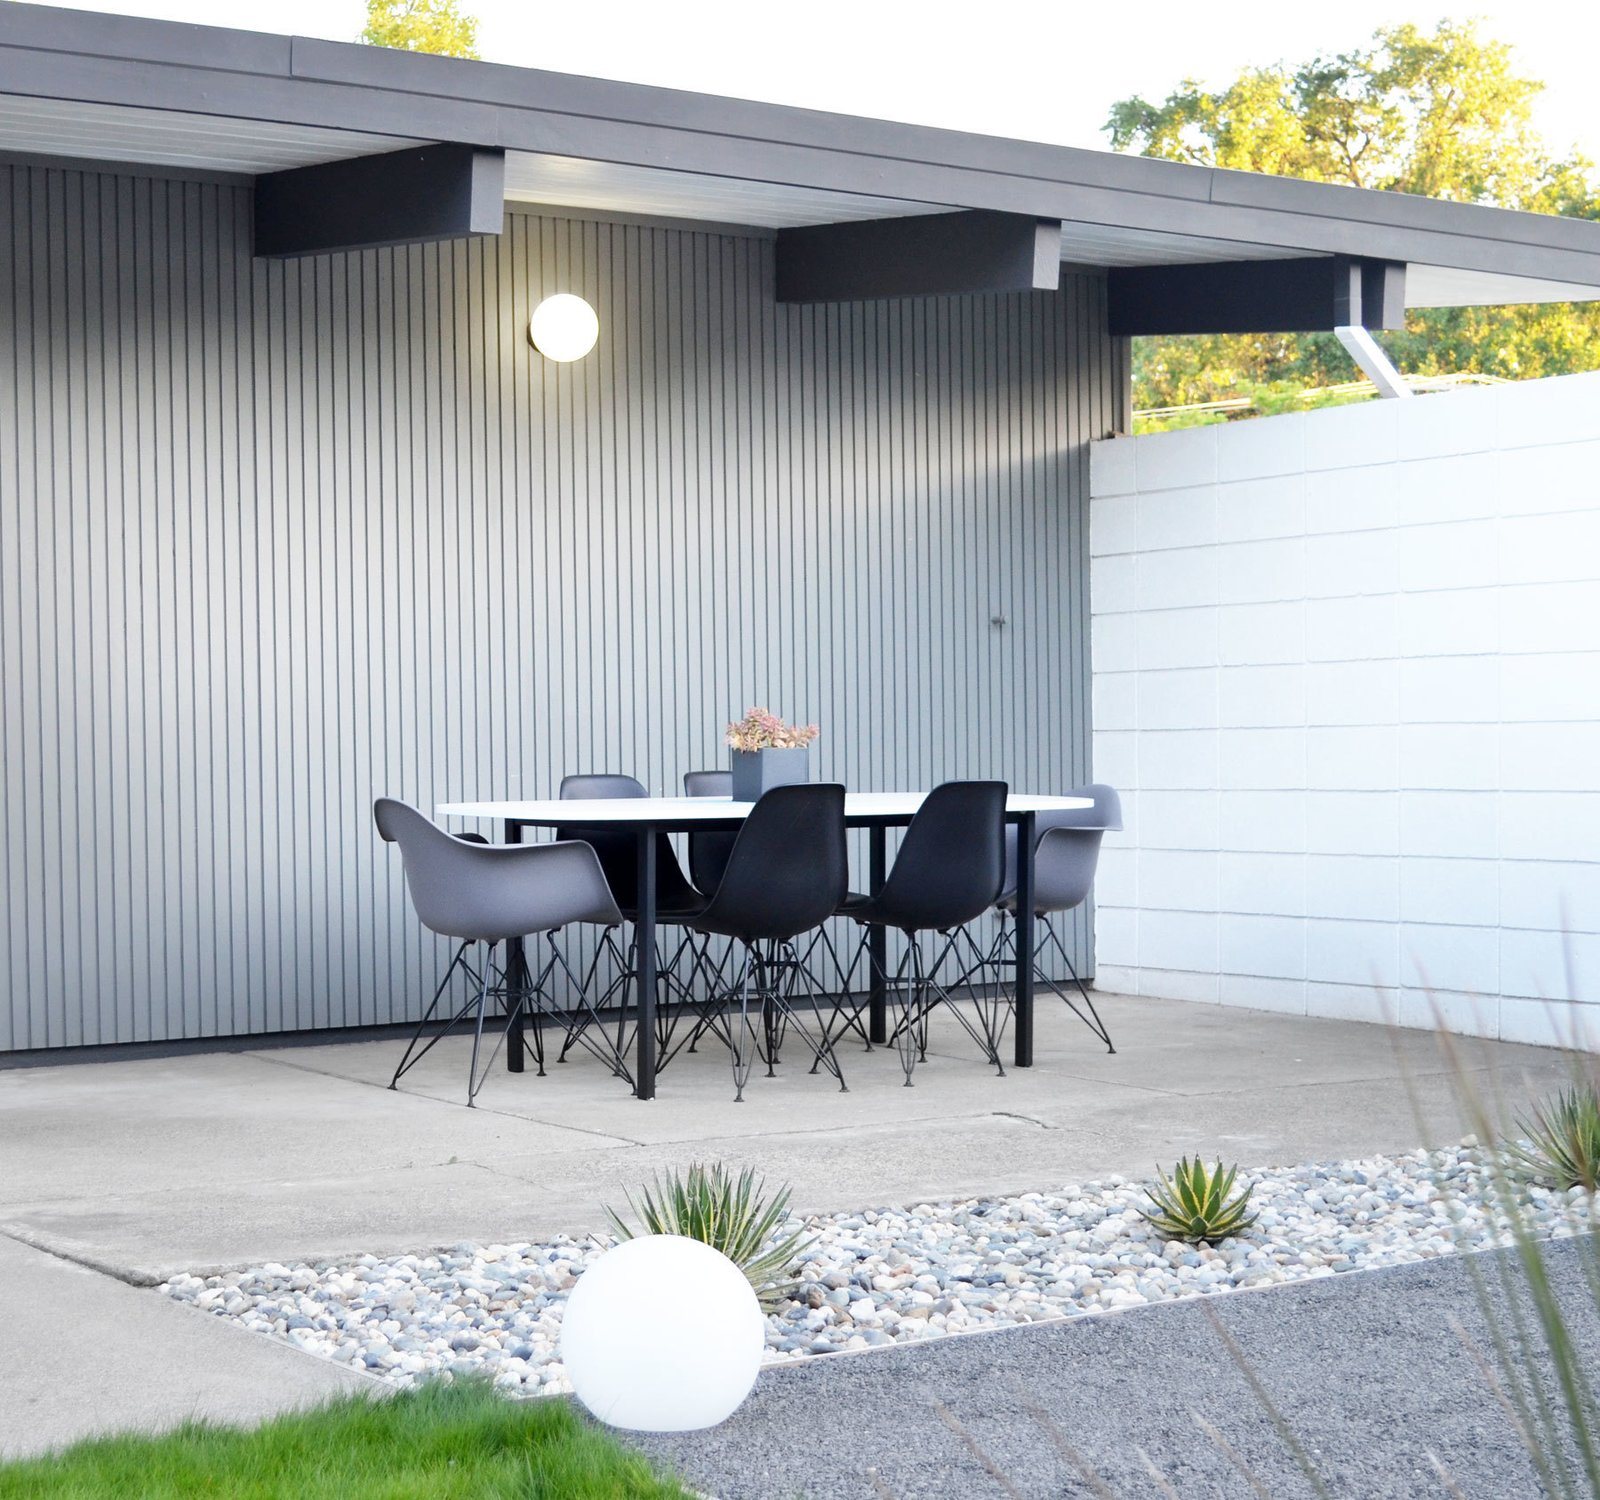 1955 Eichler Home landscaping by fogmodern